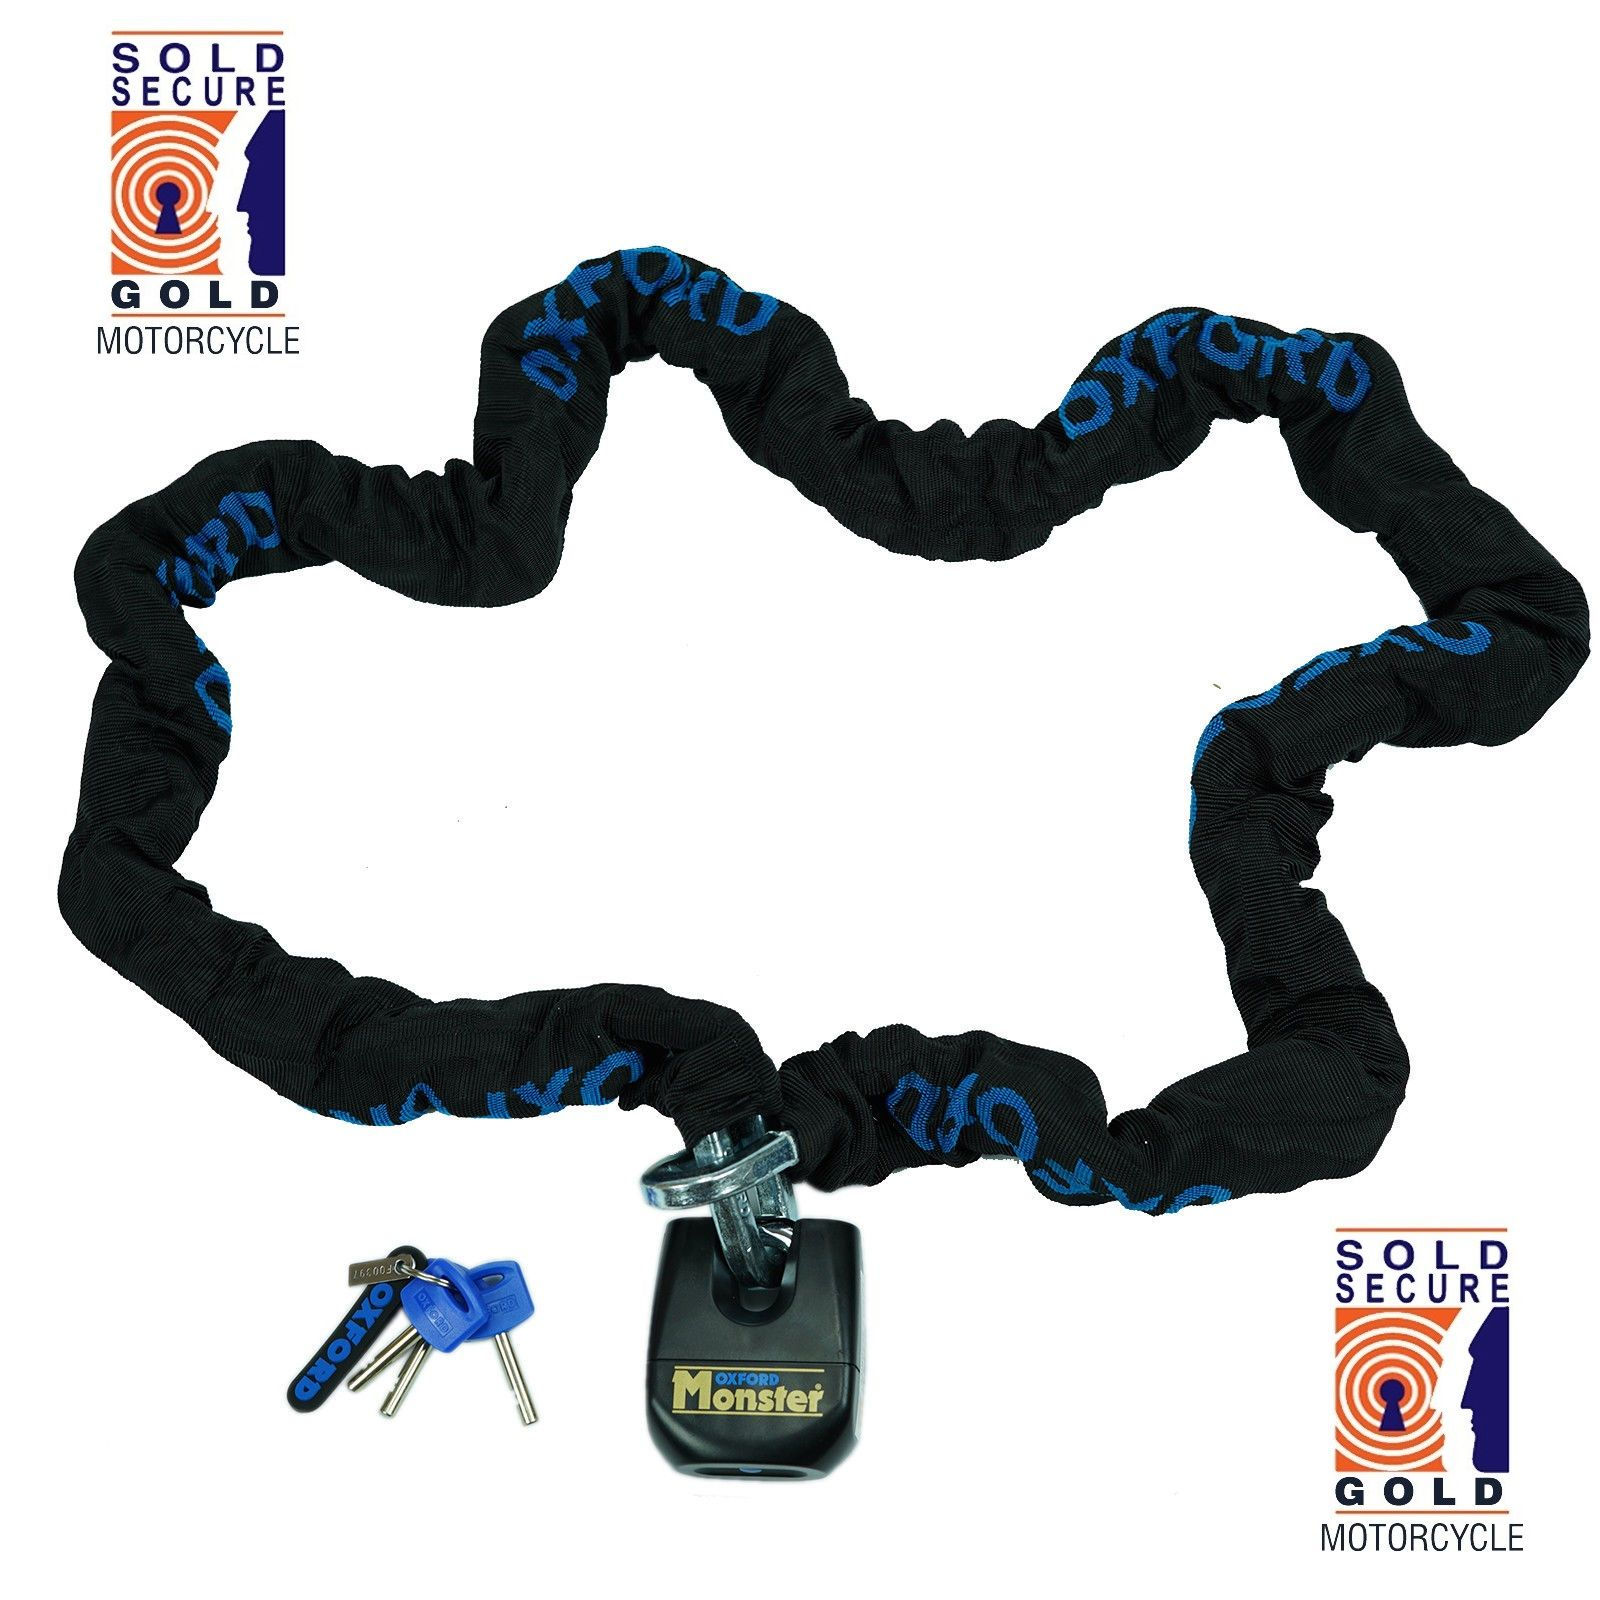 Oxford HD 2.0m Chain Lock Sold Secure Motorcycle Chain Lock Motorbike Scooter Best Security Theft Protection